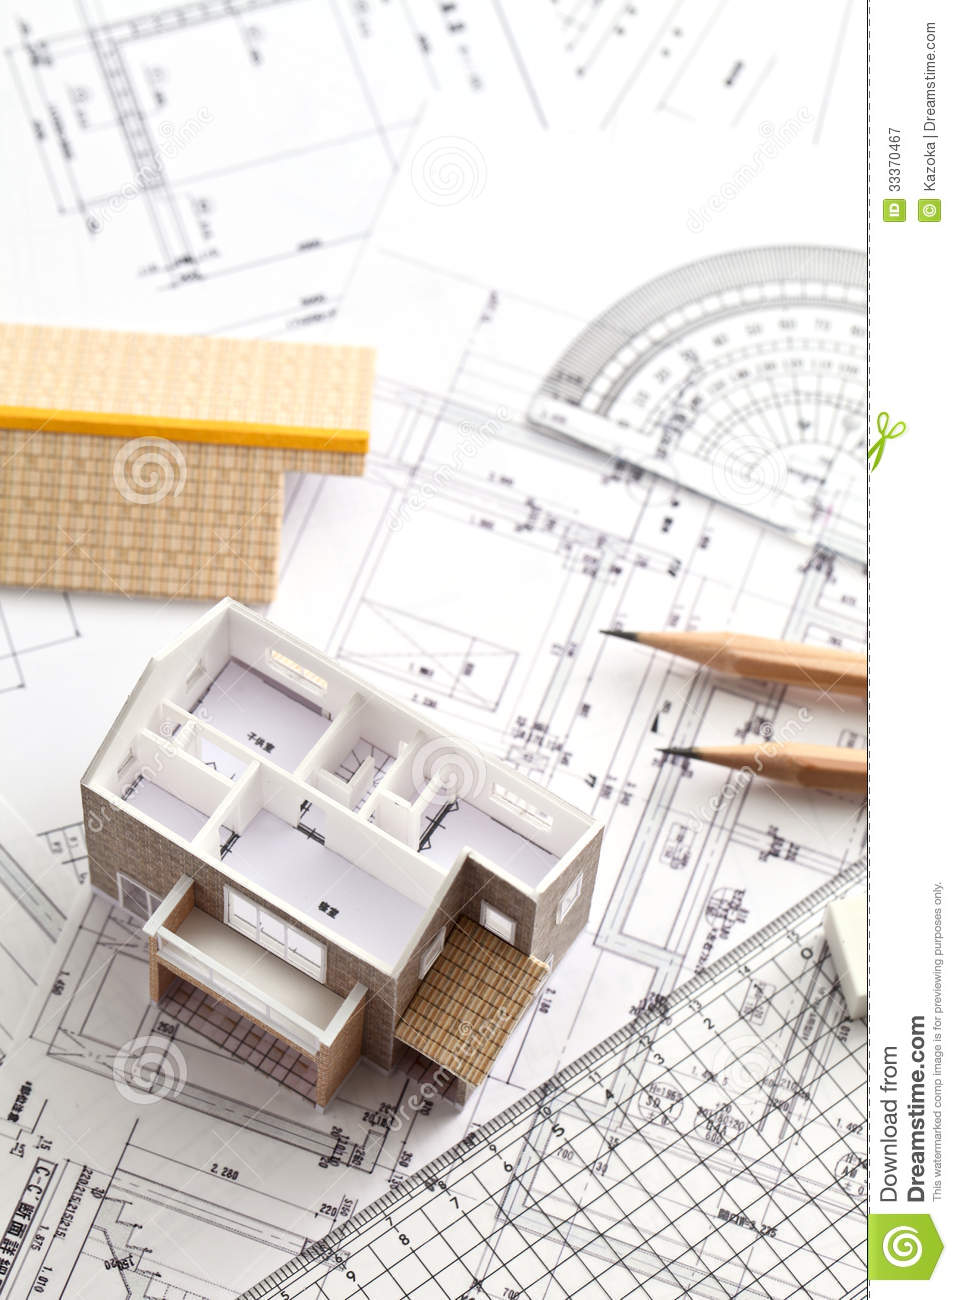 House design drawing stock image image of dwelling for Design your own building free